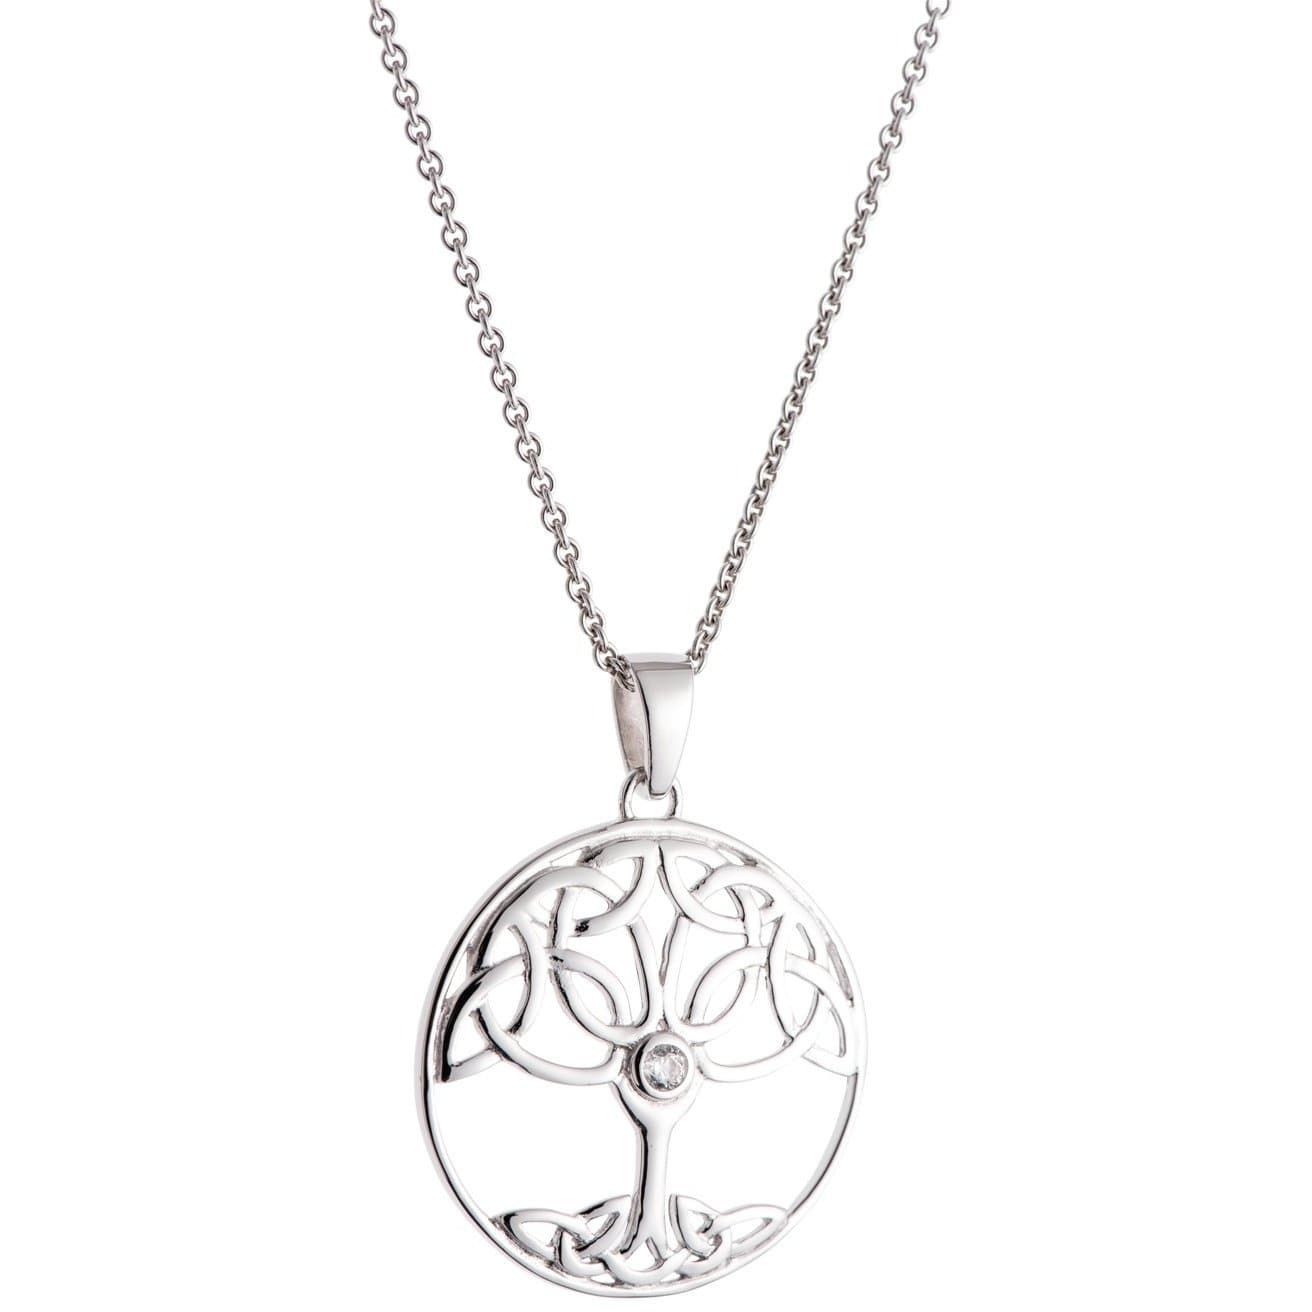 Crystal Tree Of Life Sterling Silver Pendant - Galway Irish Crystal